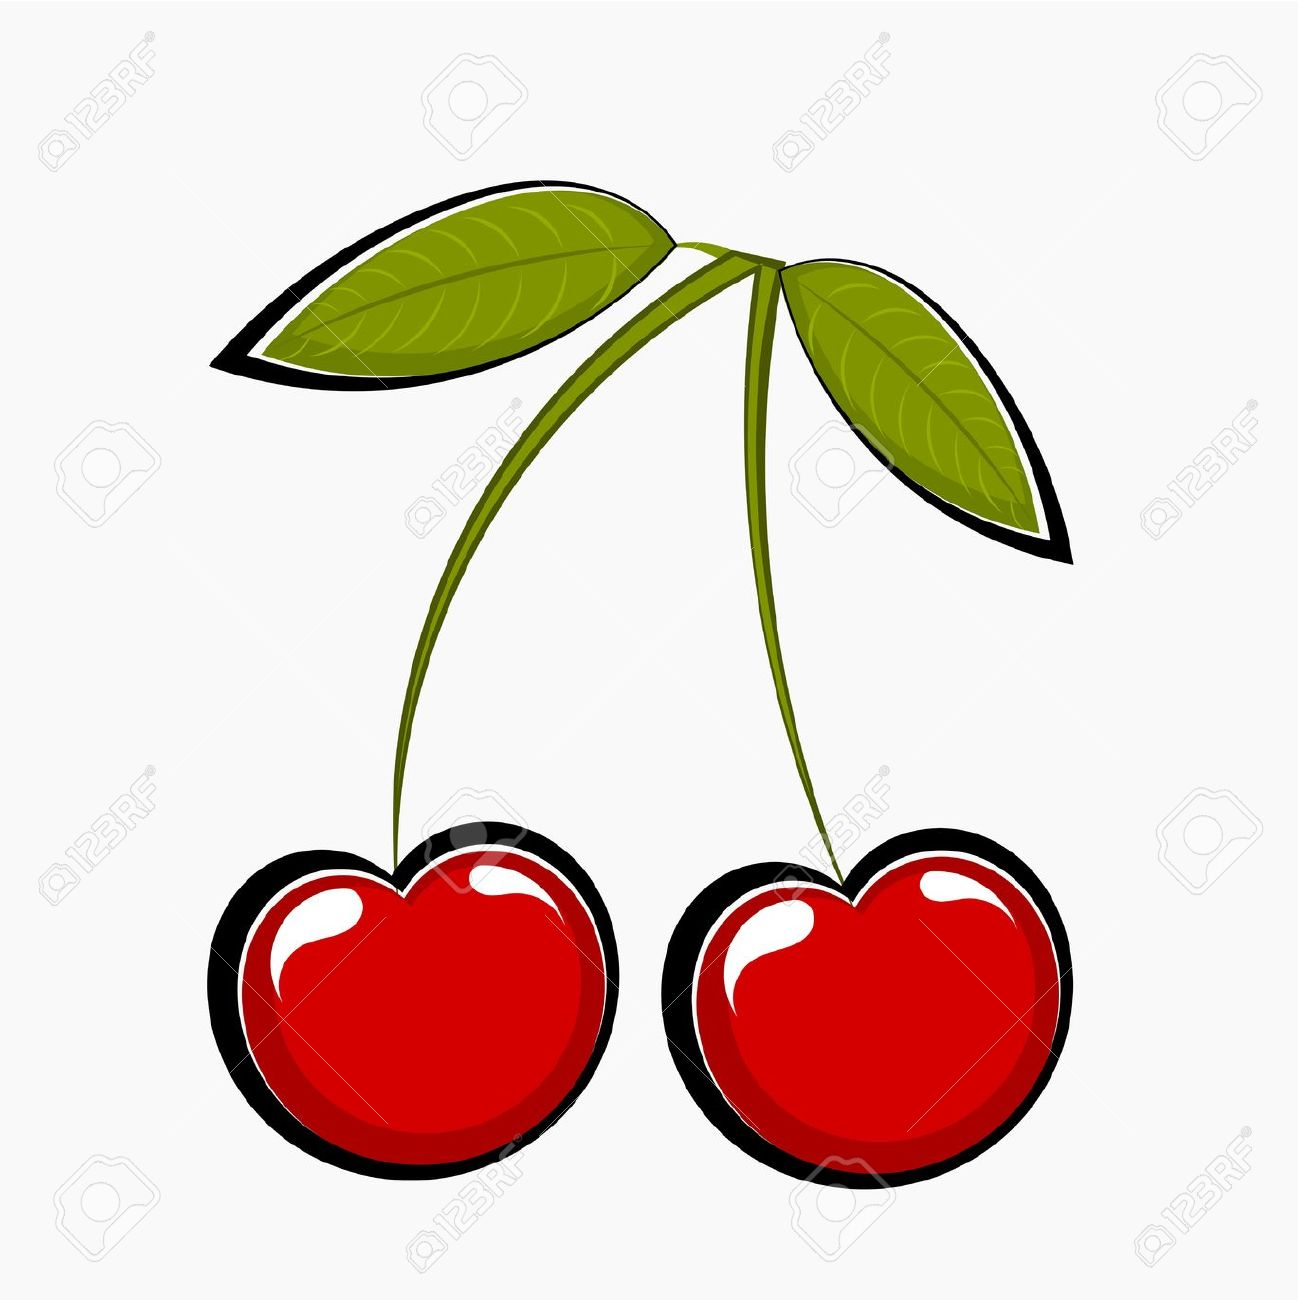 Two Sweet Cherries, Illustration Royalty Free Cliparts, Vectors.